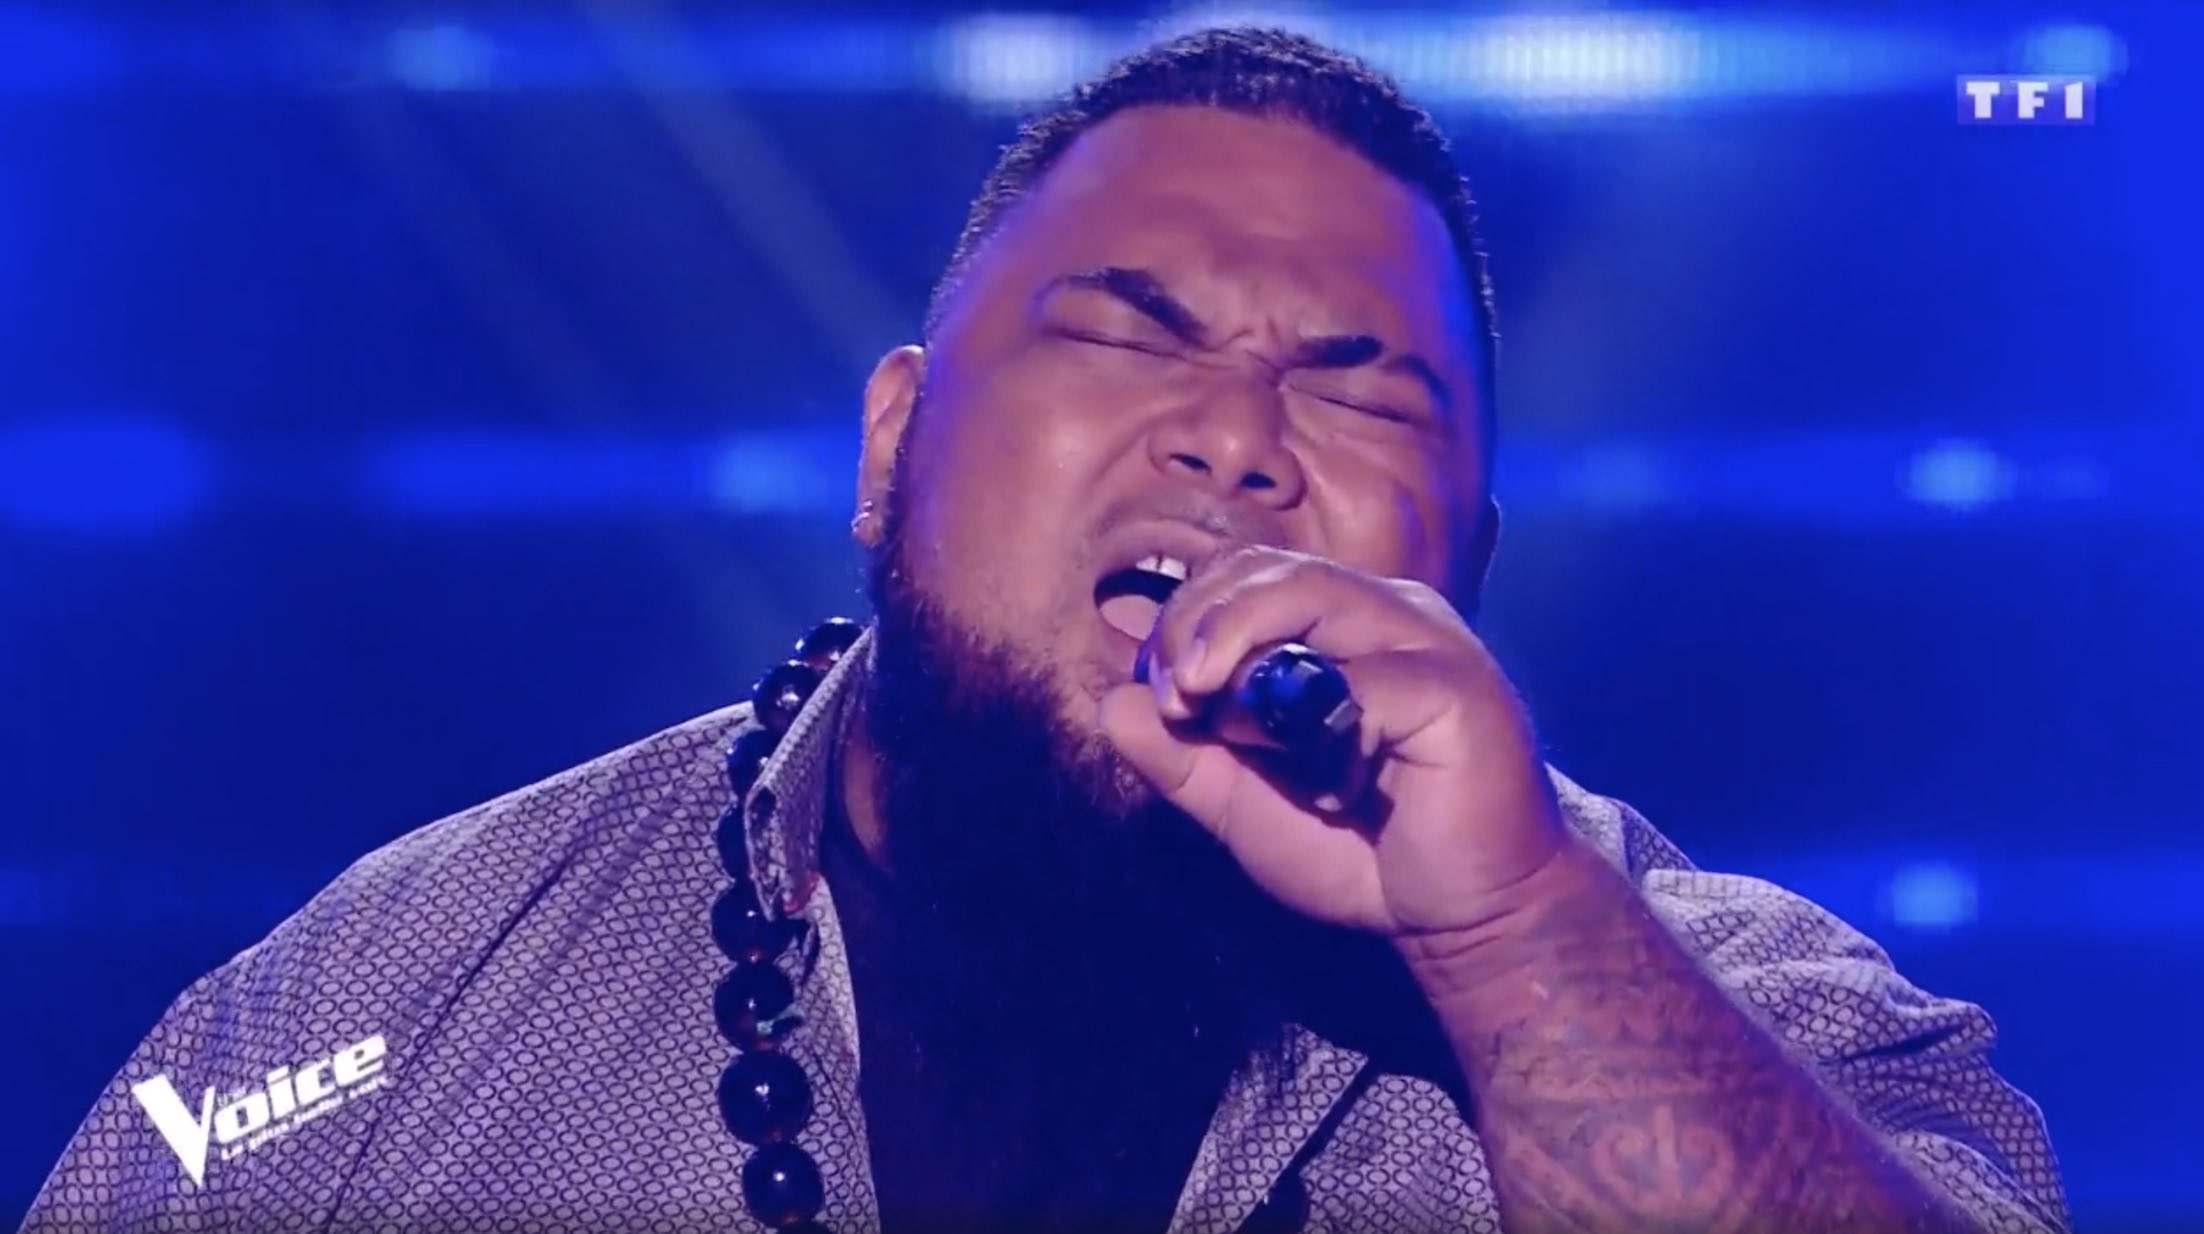 The Voice 9 - The Voice 2020 - The Voice - Jimmy